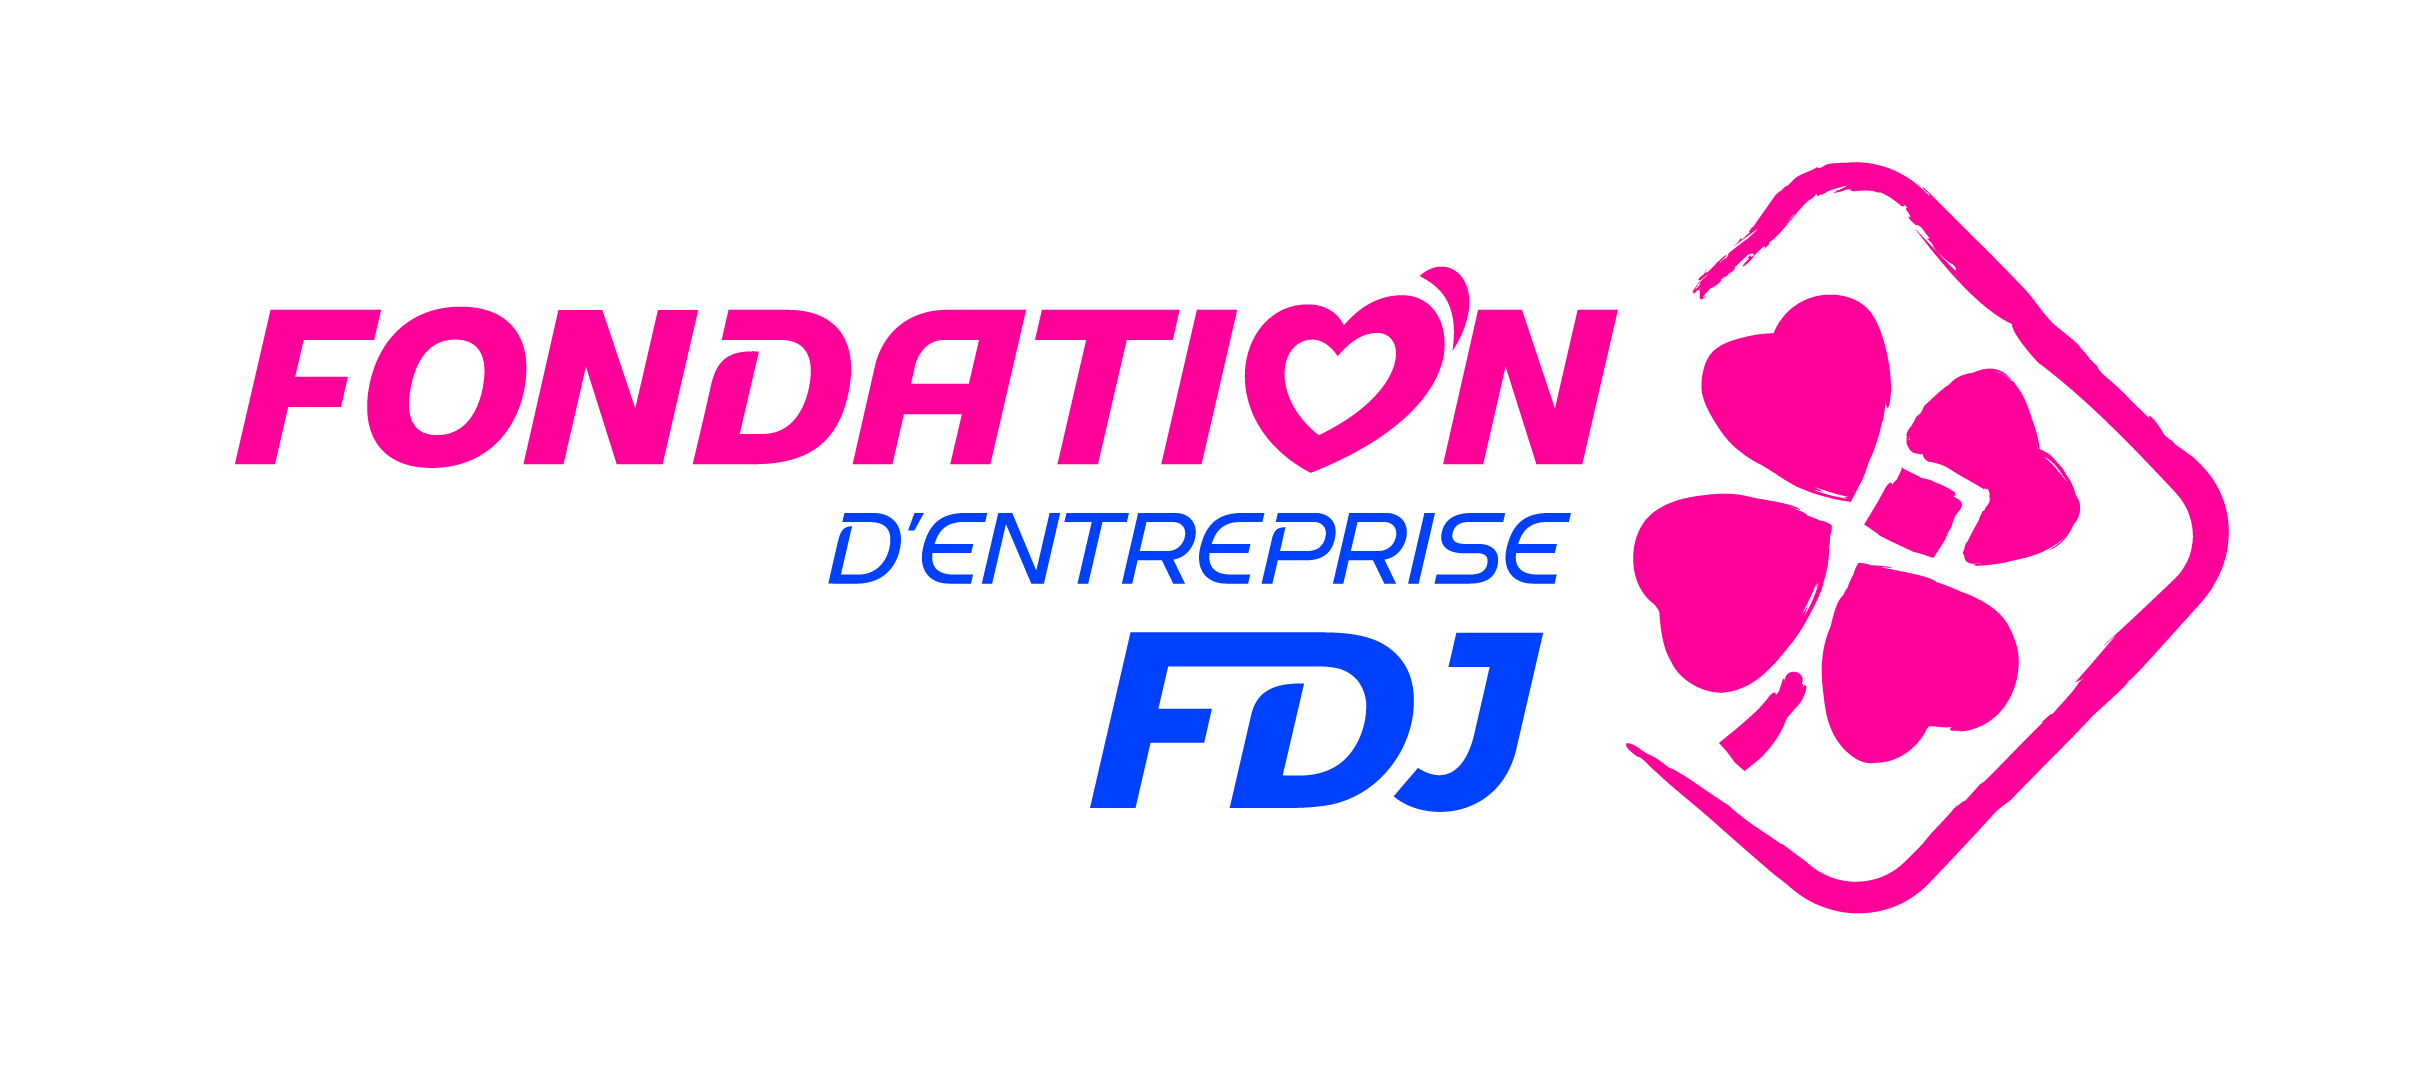 LOGO_FONDATION_DENTREPRISE_FDJ_CMJN (1)